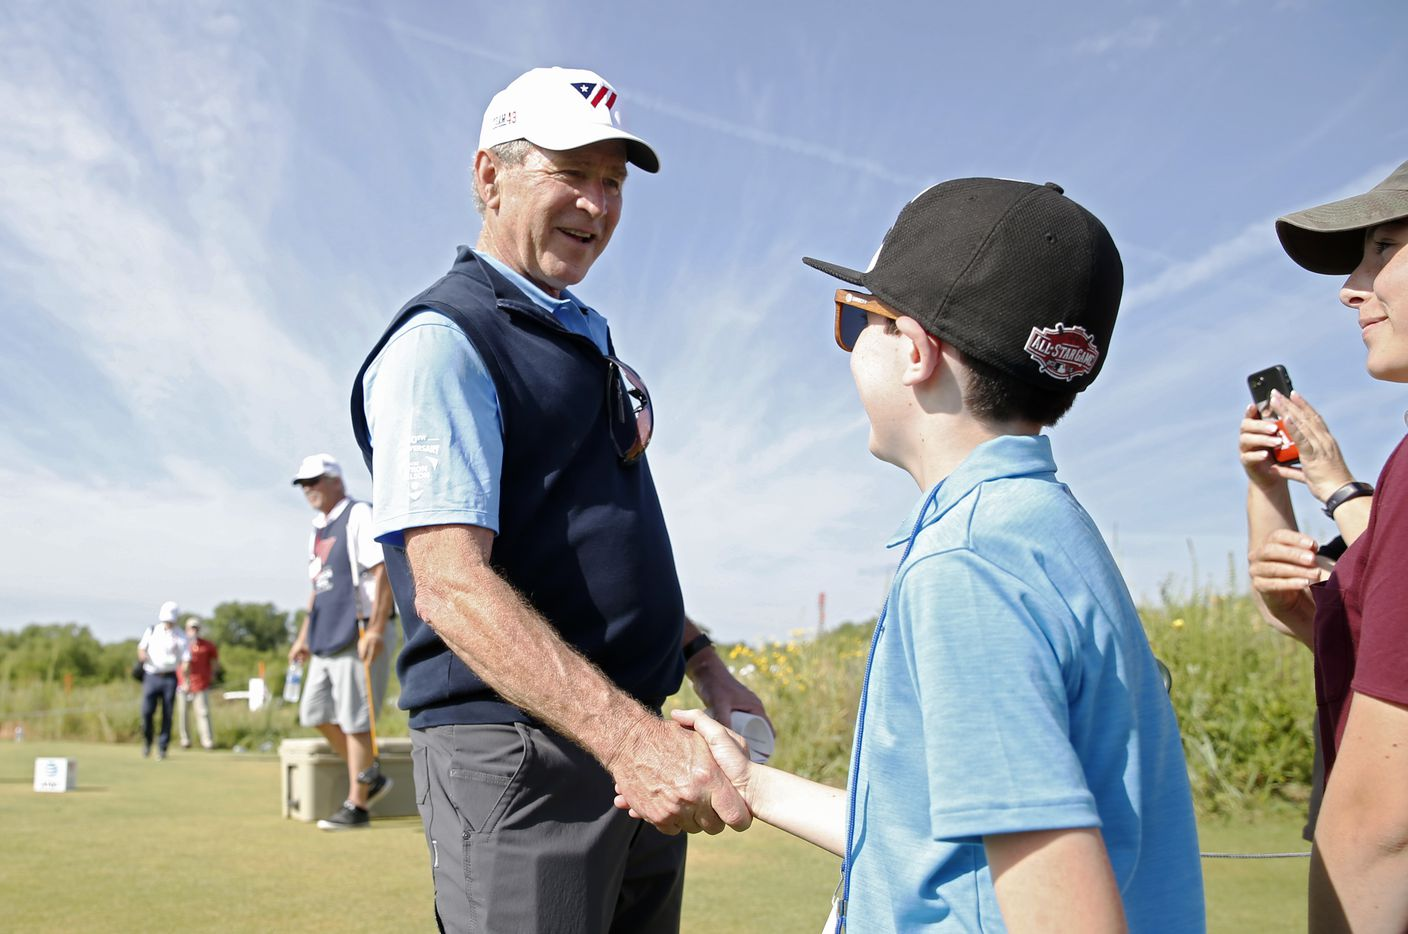 Jacob Bachelder shakes hands with George W. Bush, 43rd president of the United States during the Warrior Open at the Trinity Forest Golf Club in Dallas.